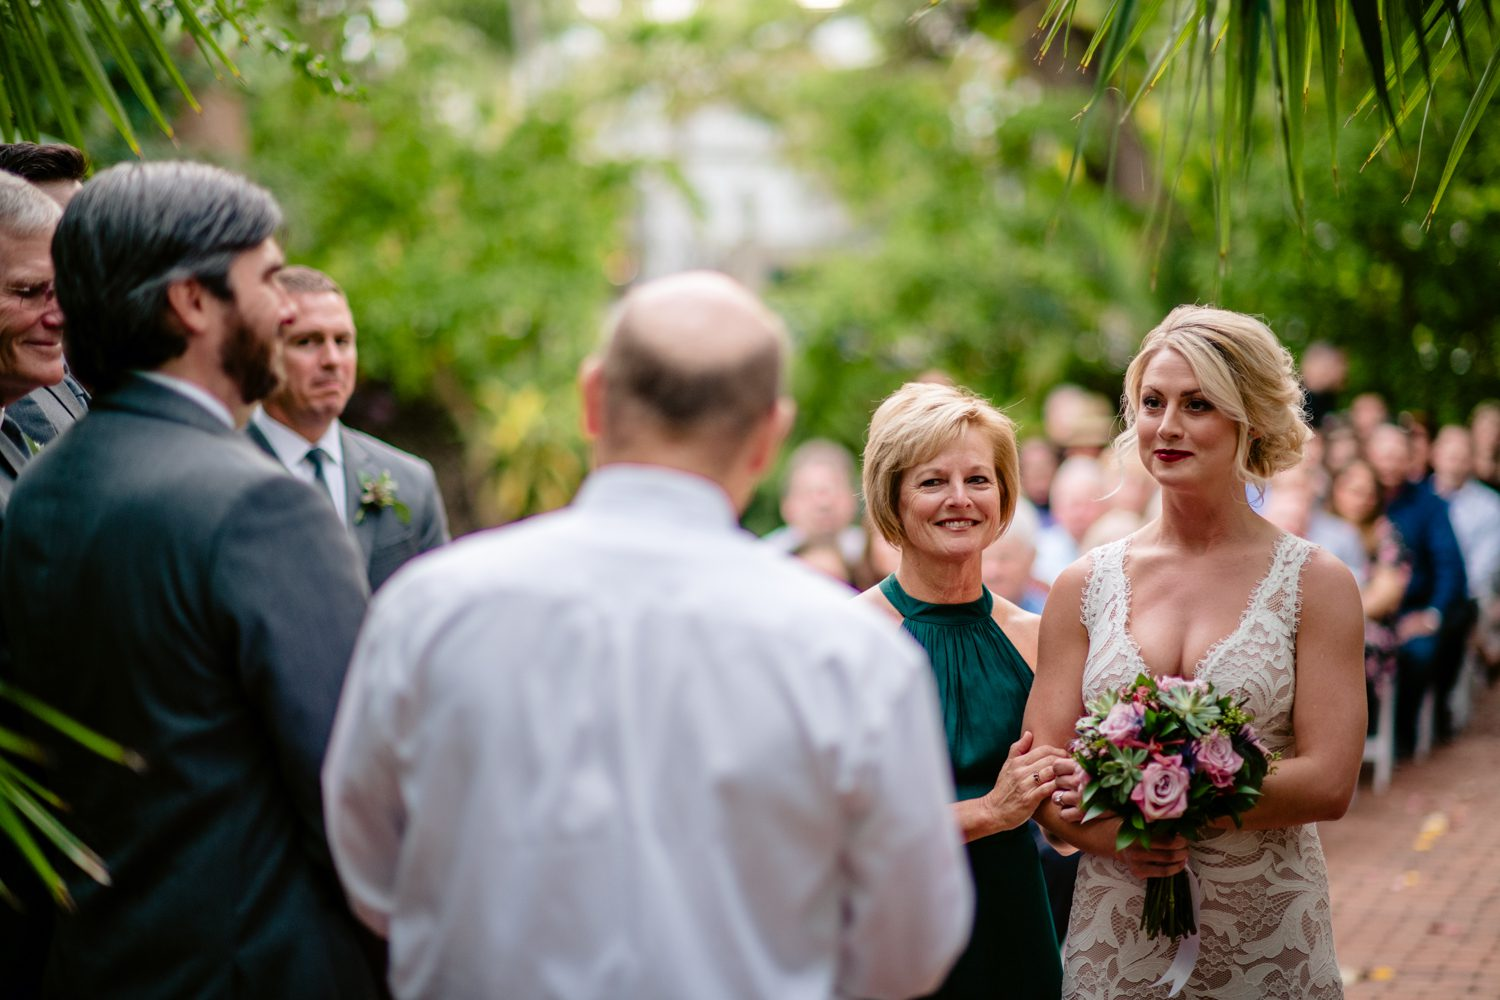 Officiant performing wedding ceremony at hemingway house